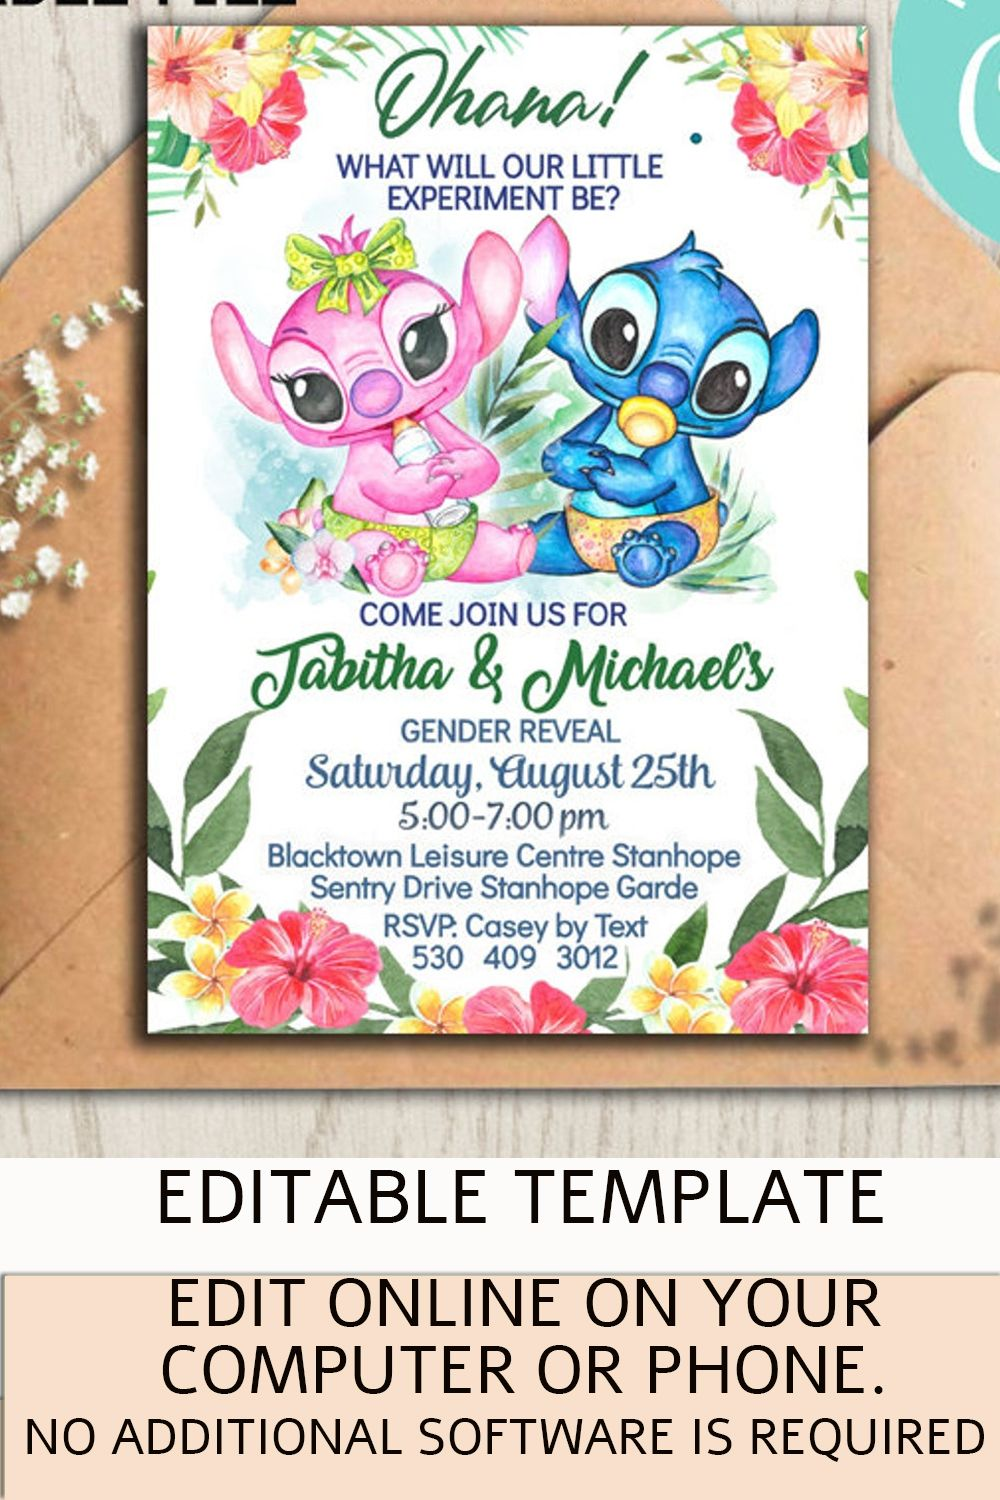 Lilo And Stitch Gender Reveal Invitation Baby Shower Hawaiian Party Palm Leaves Tropical Instant Download Editable Template Angel Baby Gender Reveal Party Gender Reveal Baby Shower Themes Gender Reveal Invitations